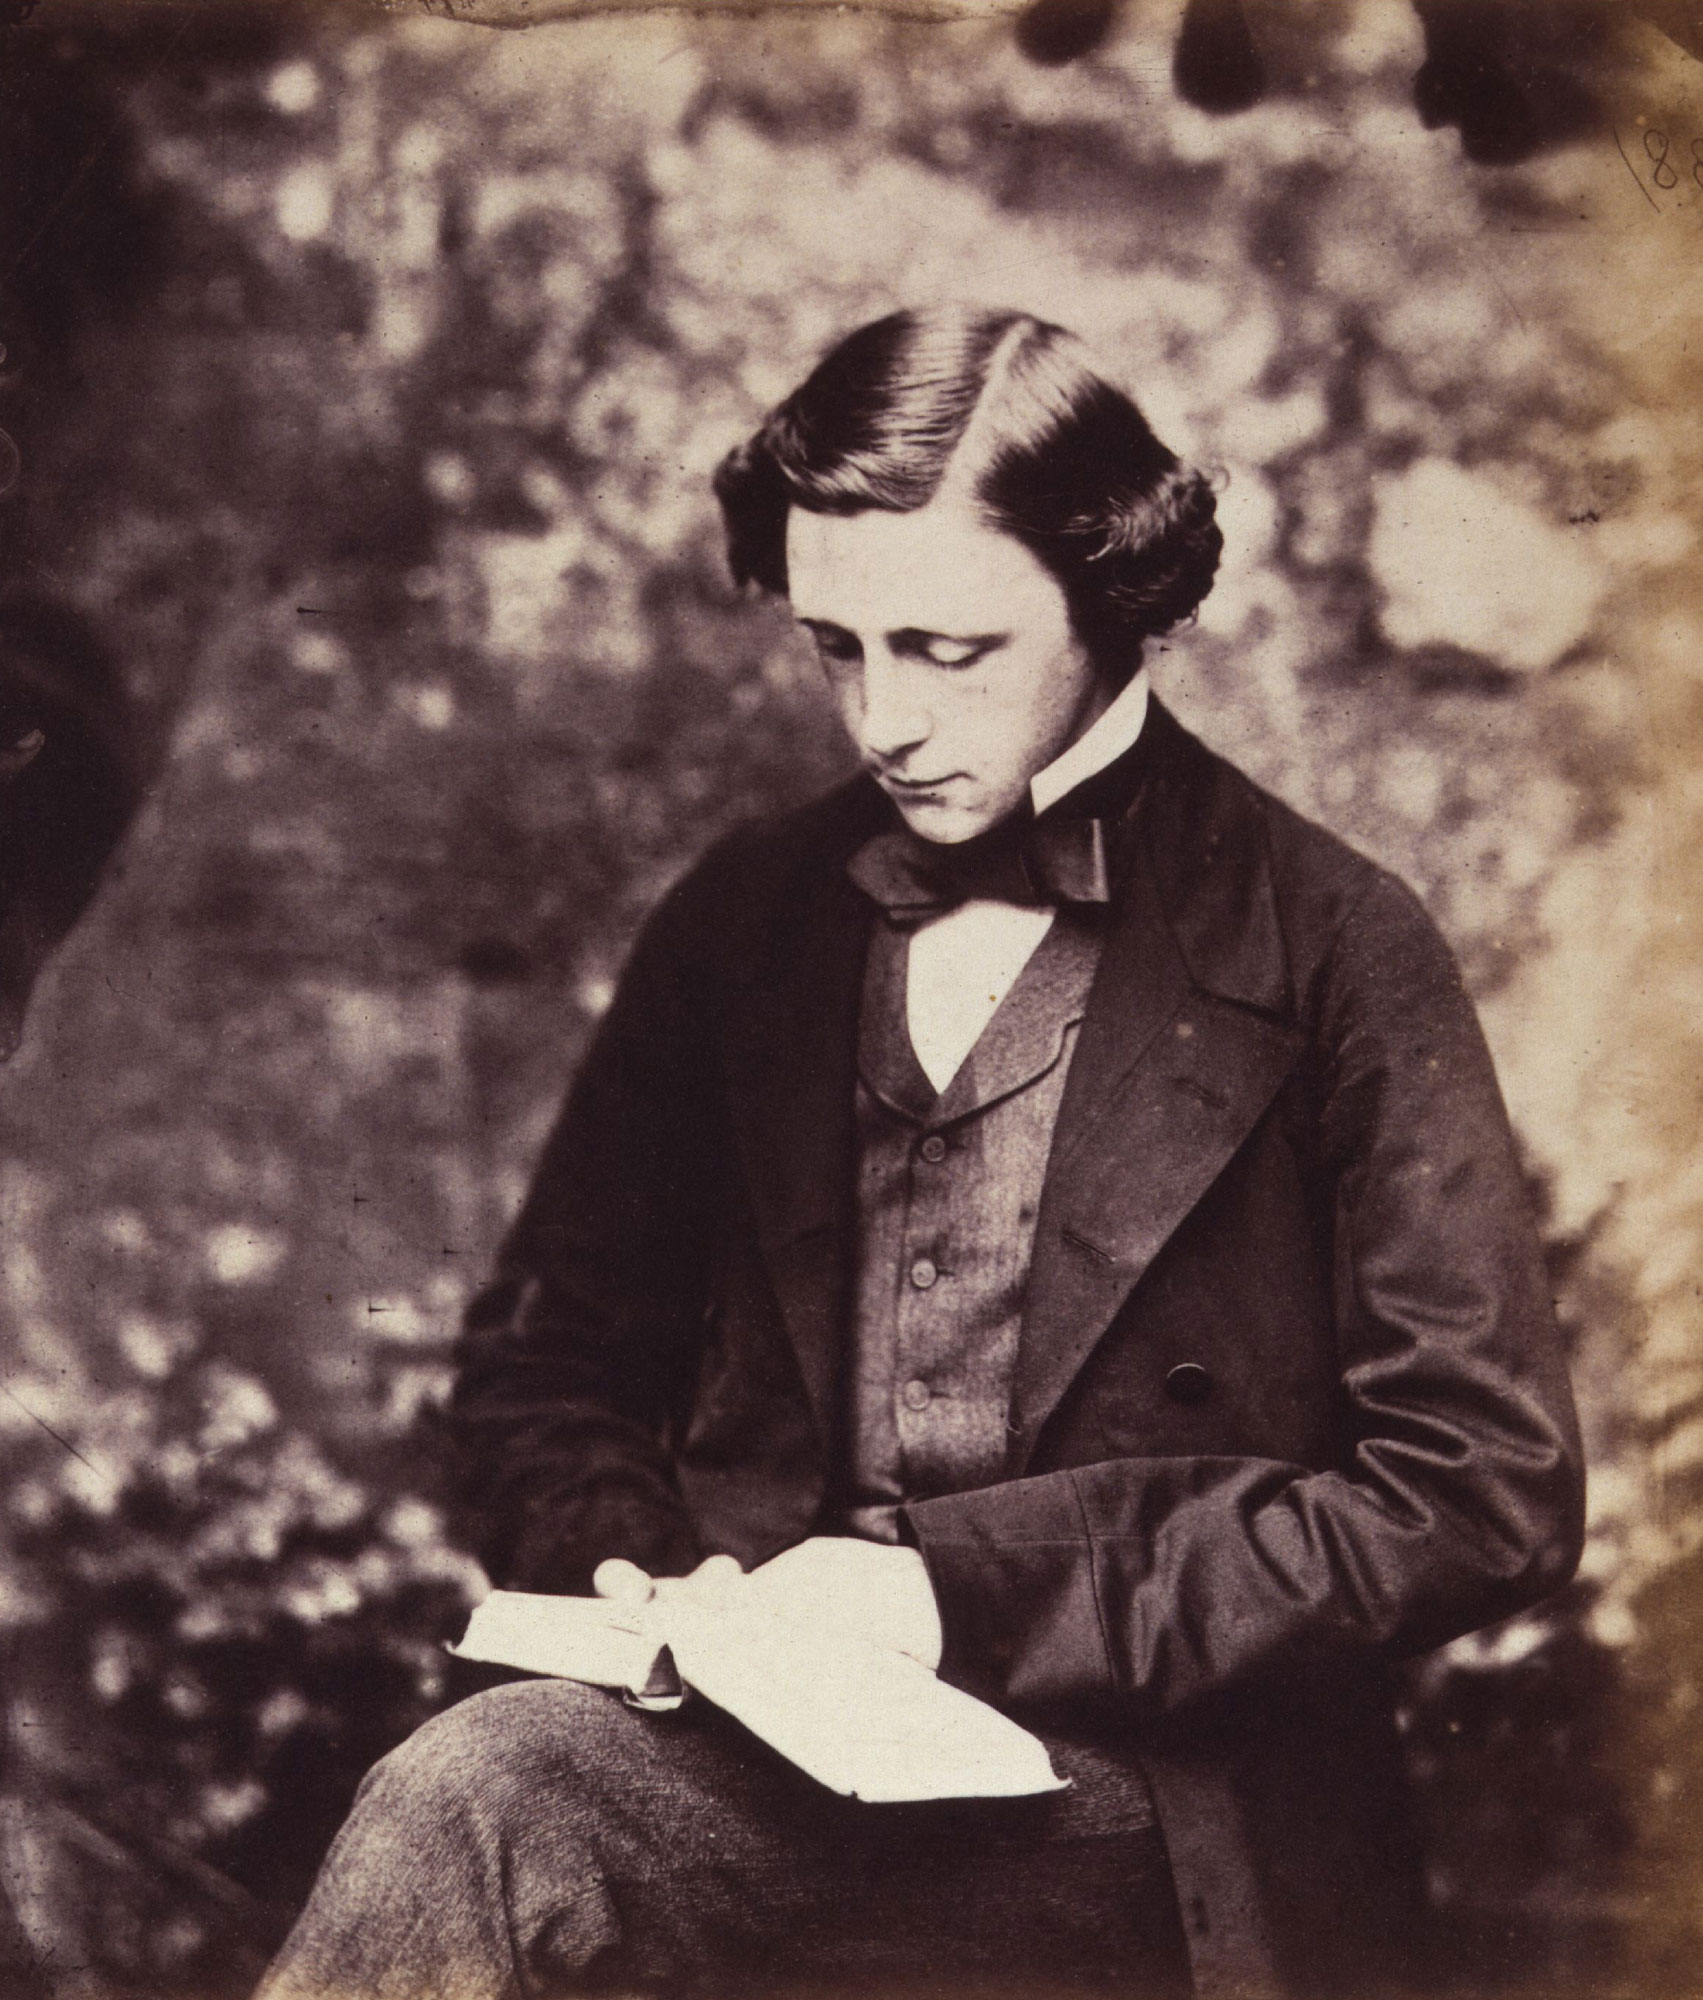 Lewis Carroll (Charles Lutwidge Dodgson), author of Alice's Adventures in Wonderland. Photograph portrait © National Portrait Gallery, London.